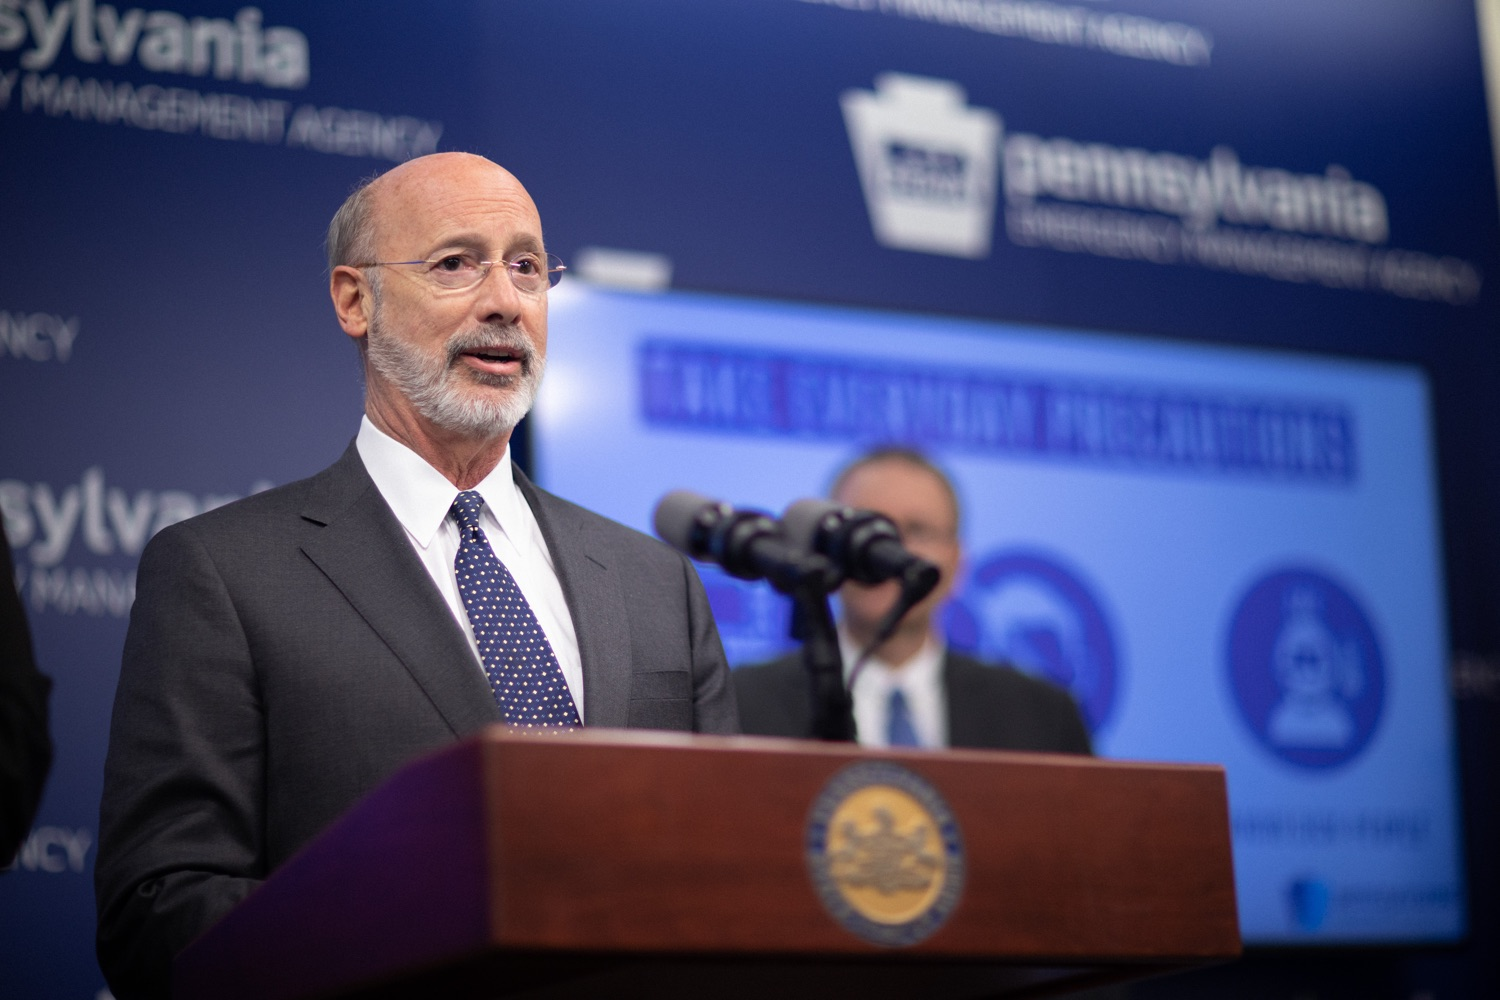 """<a href=""""https://filesource.wostreaming.net/commonwealthofpa/photo/17888_gov_covid19_update_dz_0015.jpg"""" target=""""_blank"""">⇣Download Photo<br></a>Governor Tom Wolf  speaking to reporters. Governor Tom Wolf and Secretary of Health Dr. Rachel Levine provided an update on the coronavirus known as COVID-19 and outline ongoing efforts to mitigate the virus in Pennsylvania. The Department of Health anticipates that there will be more Pennsylvanians who test positive for COVID-19 in the coming days and weeks and it is important for residents to know the commonwealth is prepared and to be prepared themselves. People have a higher chance of testing positive for COVID-19 if they have traveled to a country or state with known community outbreaks or have come in contact with someone who has the virus. The Wolf Administration is working with the health care community across Pennsylvania to keep them informed, consult on patient testing, and ensure they have the resources they need to care for patients. .March 16, 2020  Harrisburg Pa."""